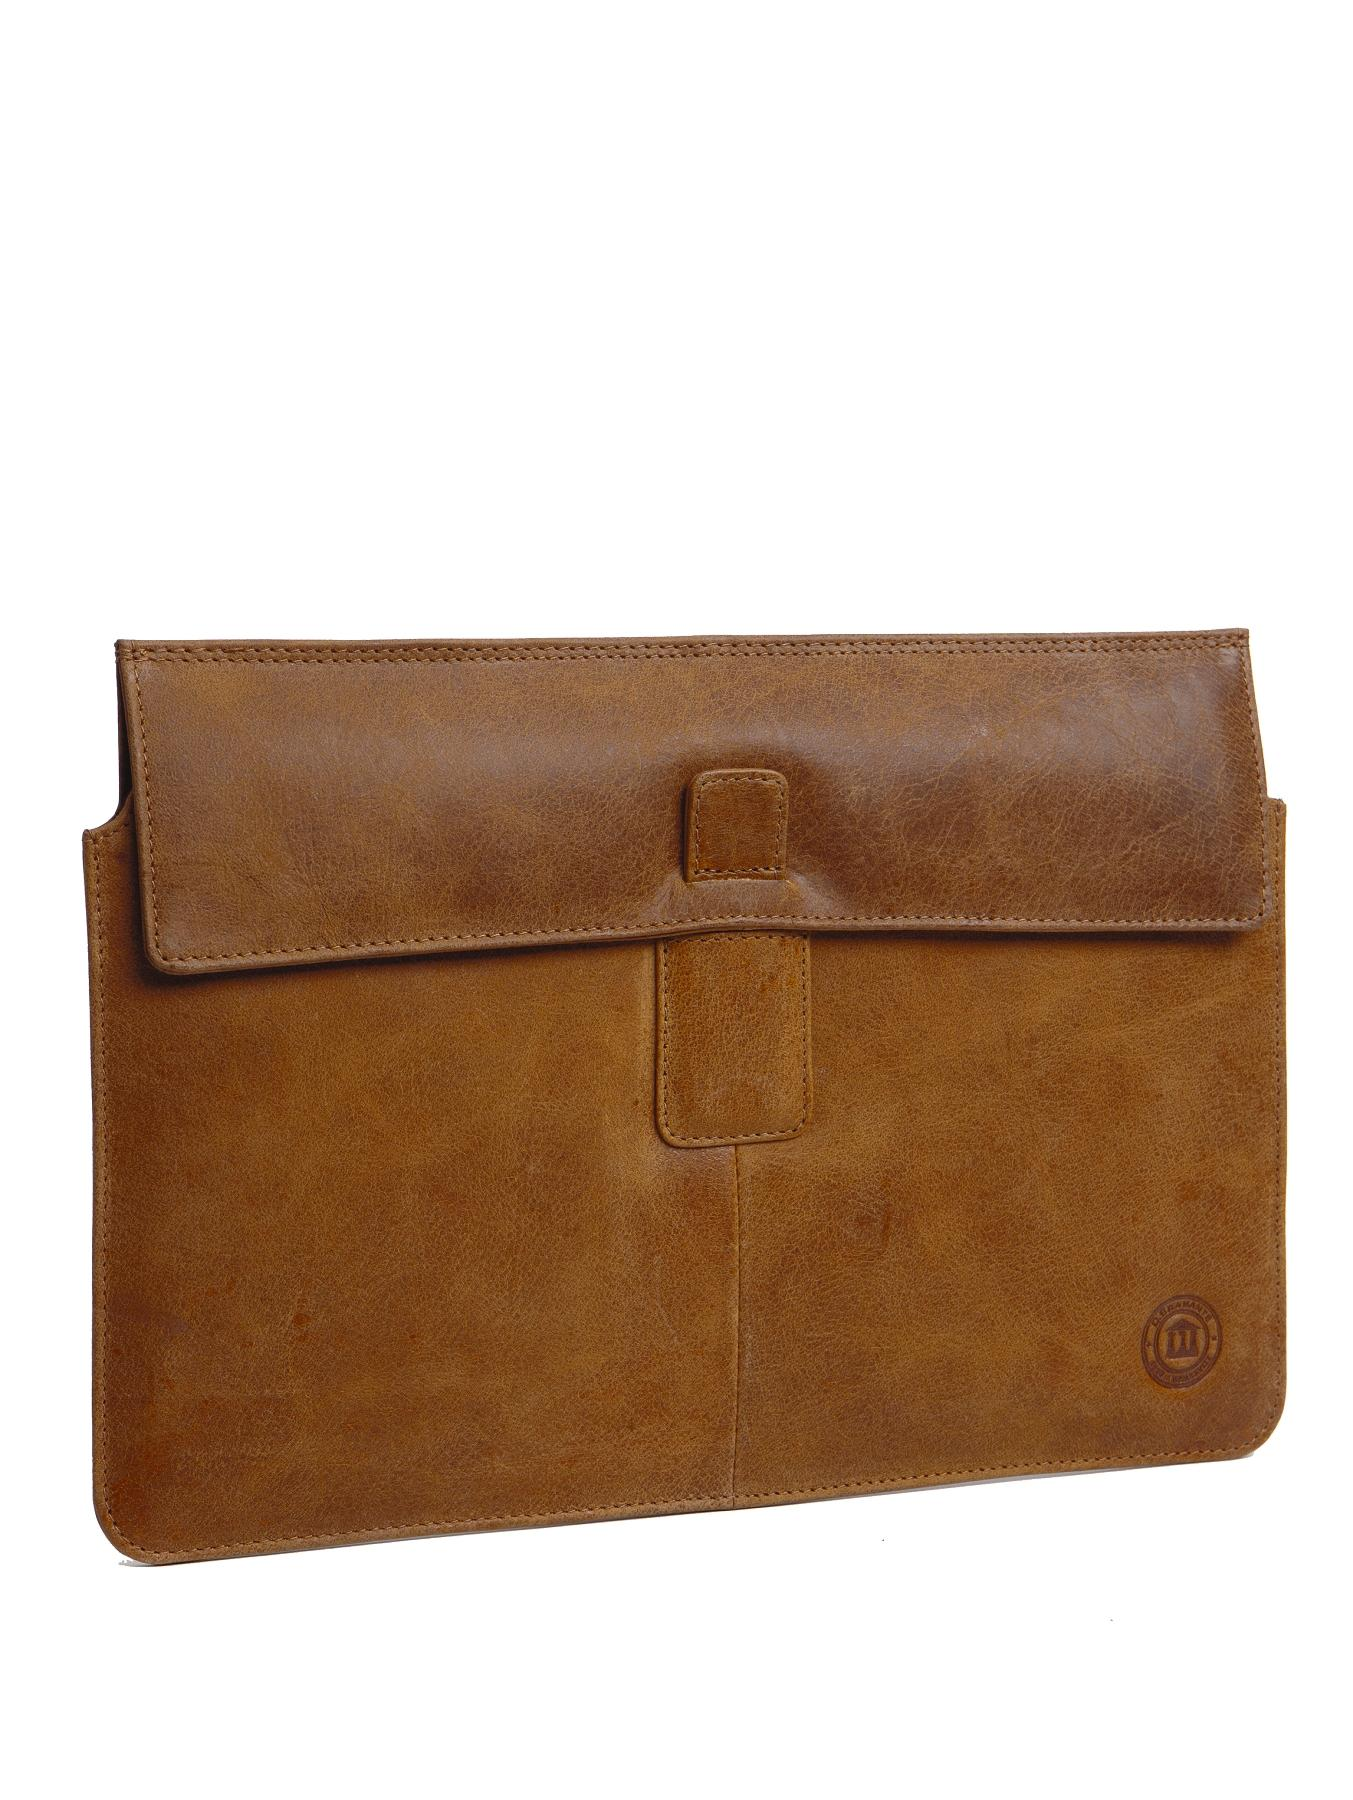 dbramante1928 MacBook Pro 13 inch Leather Envelope Case - Golden Tan